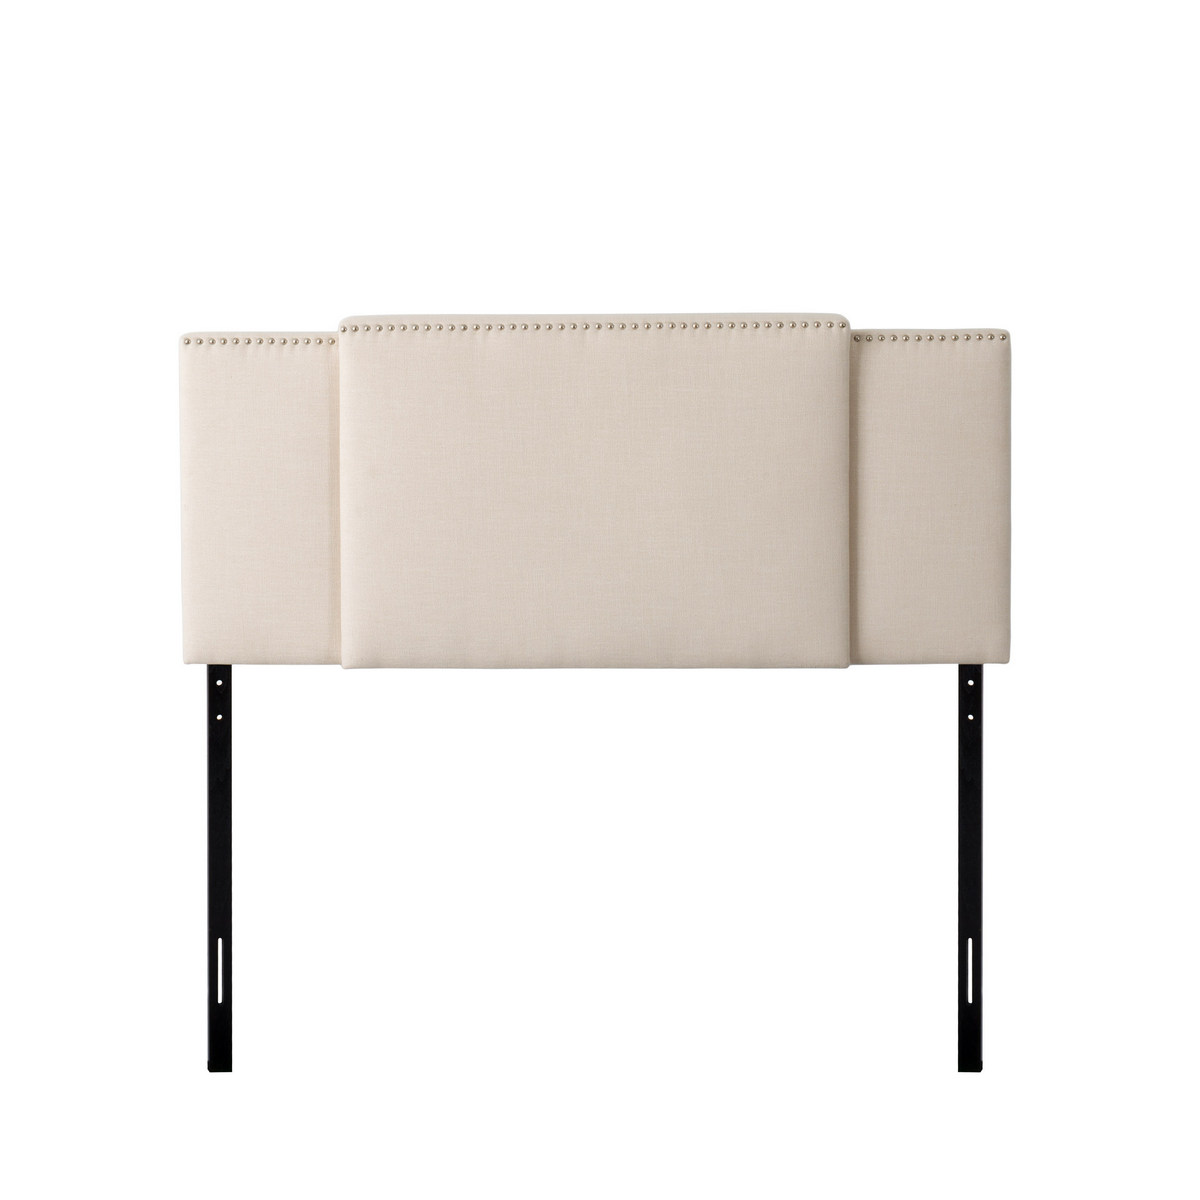 CorLiving BBT-970-A Fairfield 3-in-1 Expandable Panel Headboard, Double, Queen or King, Cream Padded Fabric